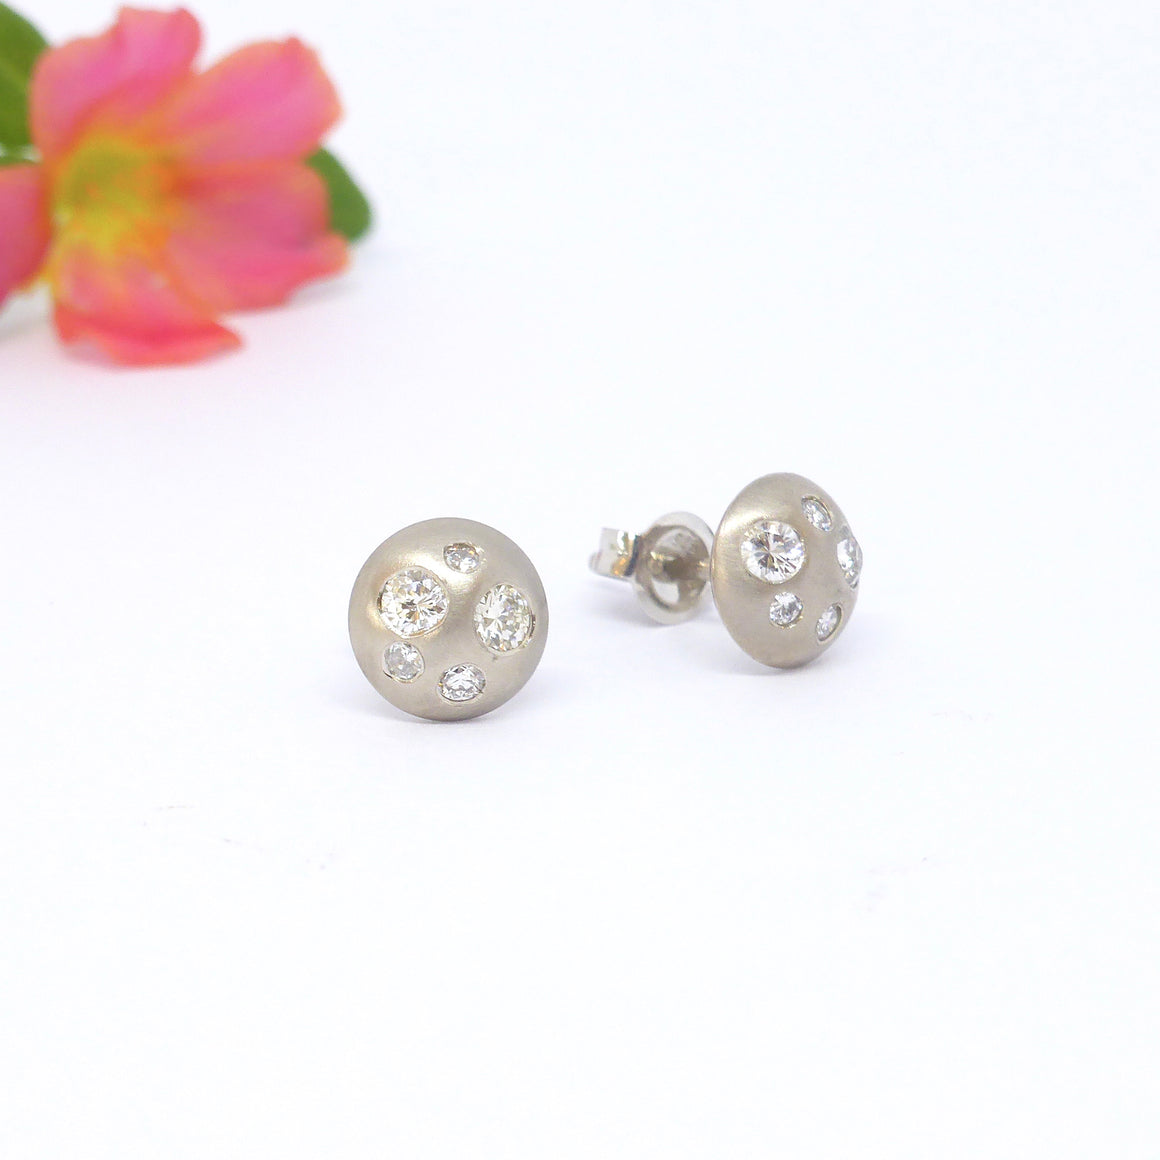 18ct white gold button stud earrings